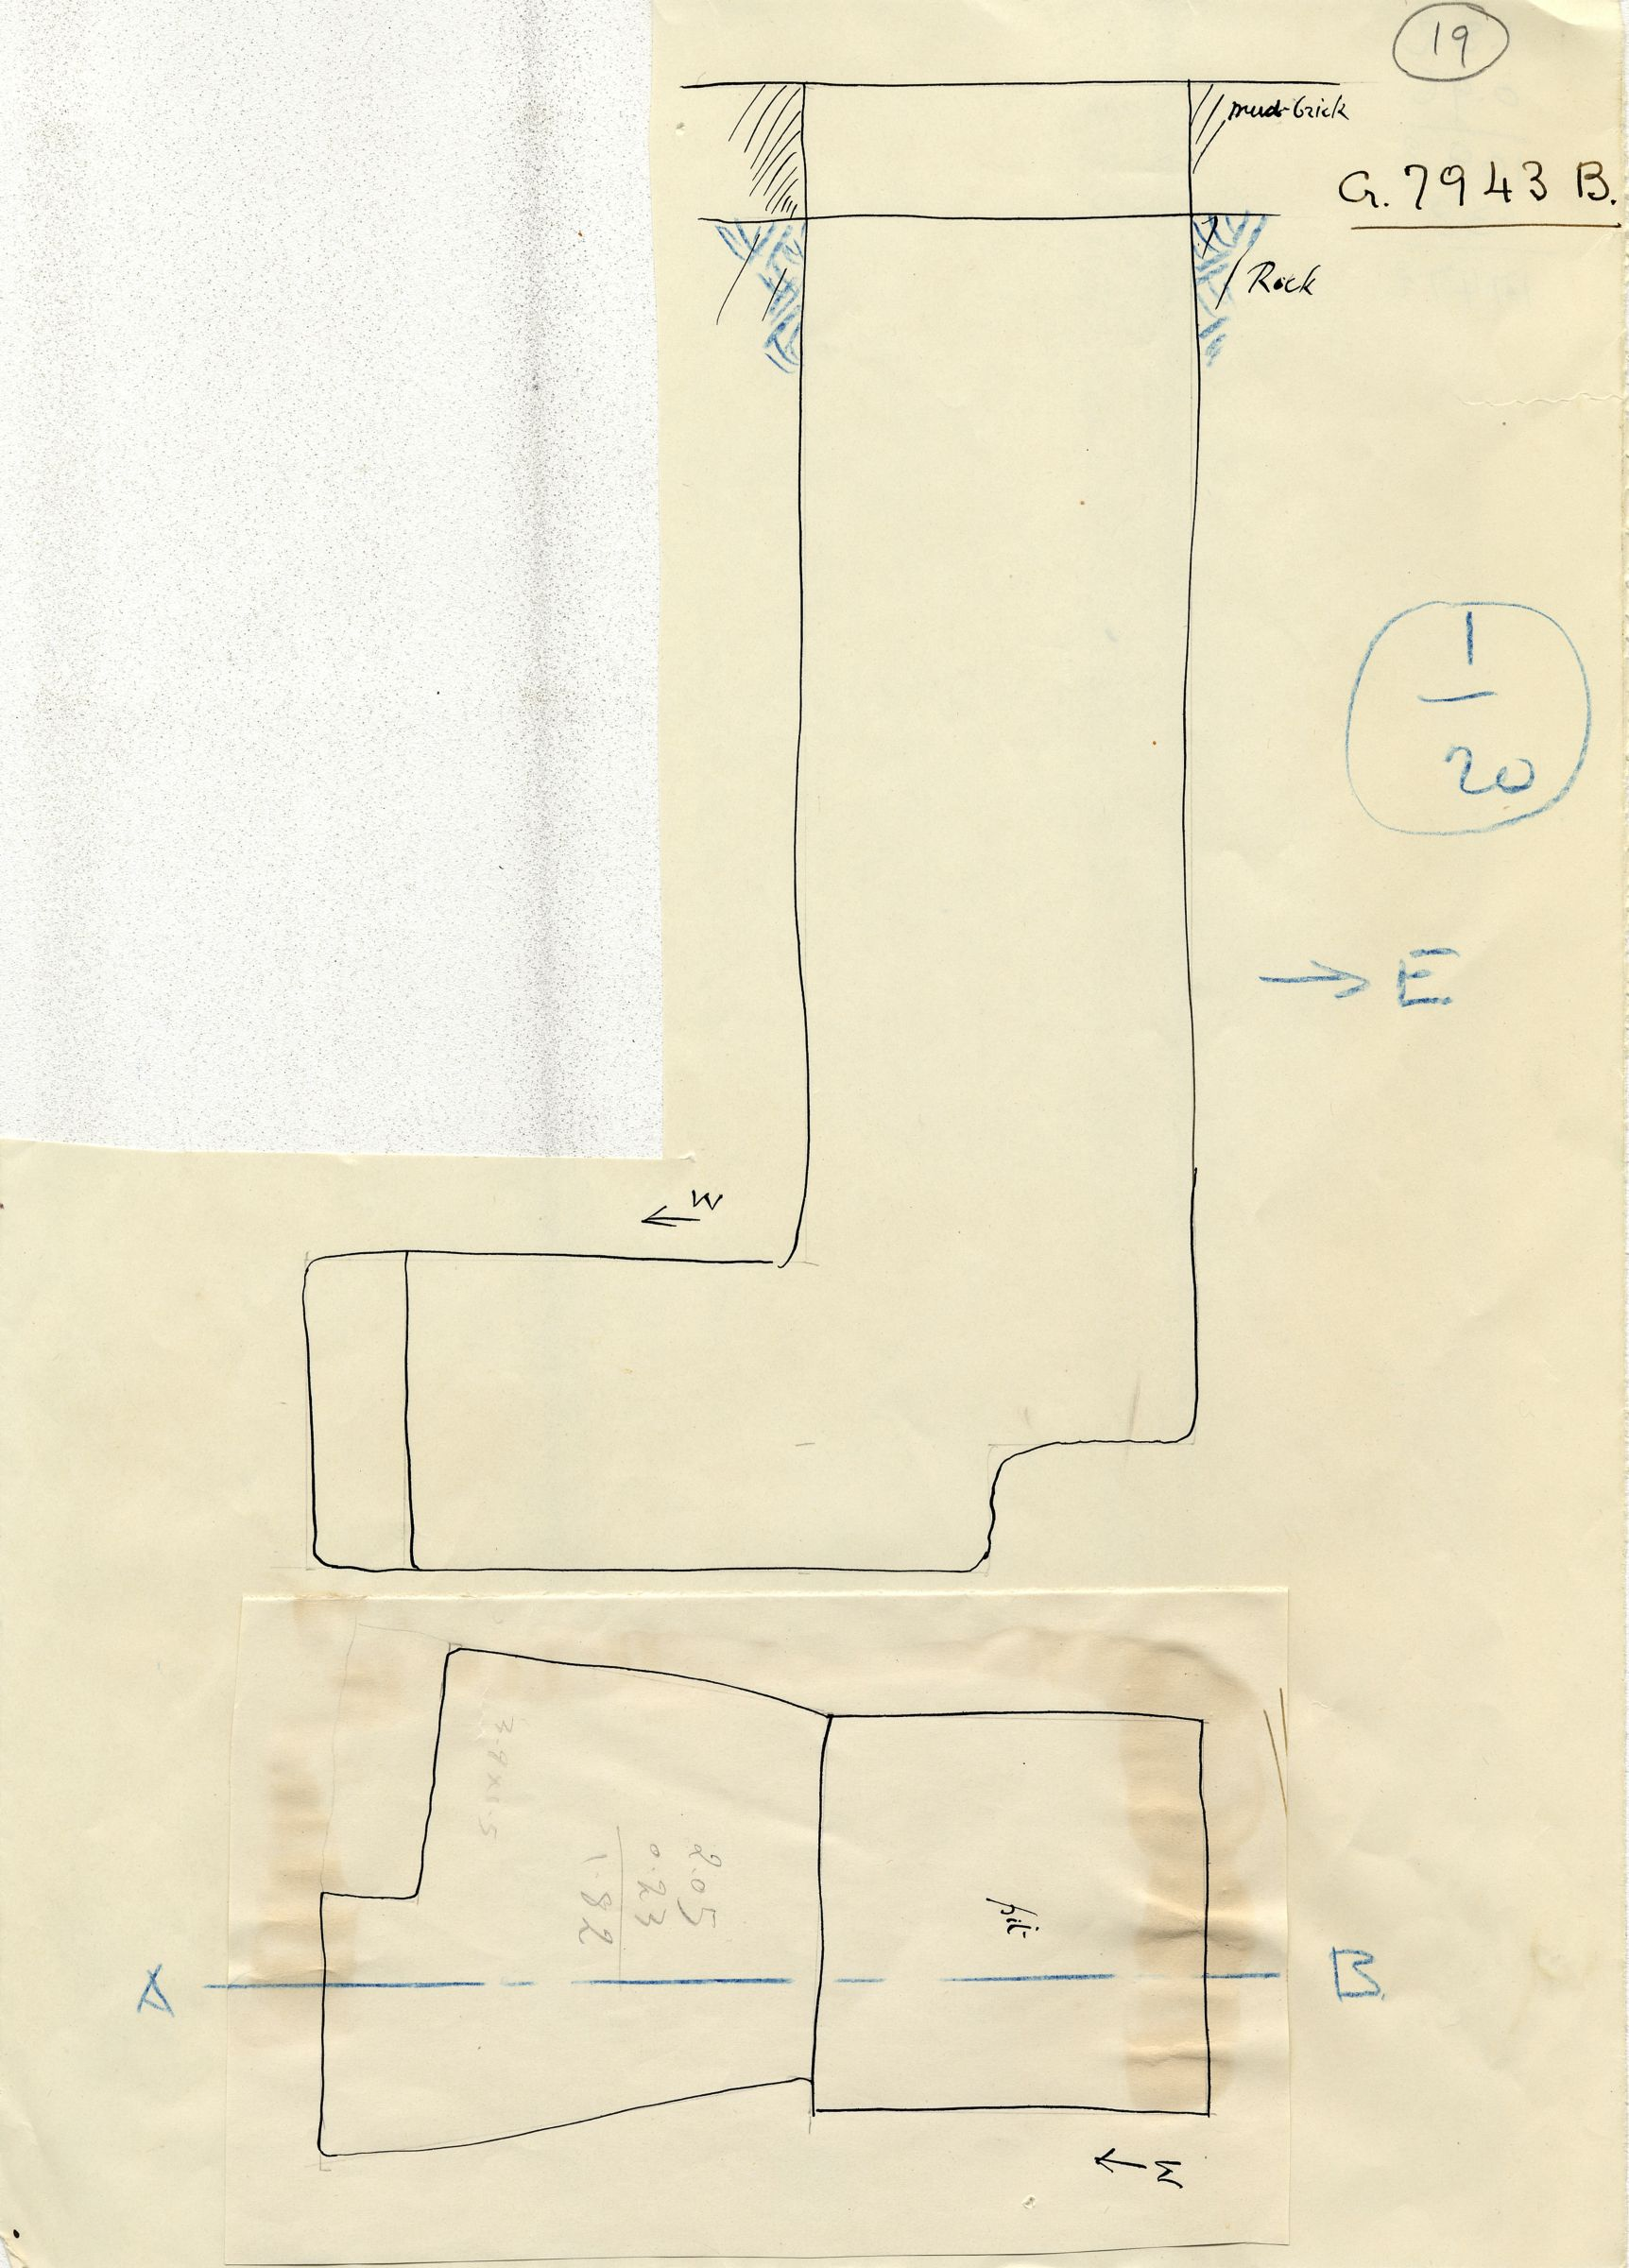 Maps and plans: G 7943, Shaft B